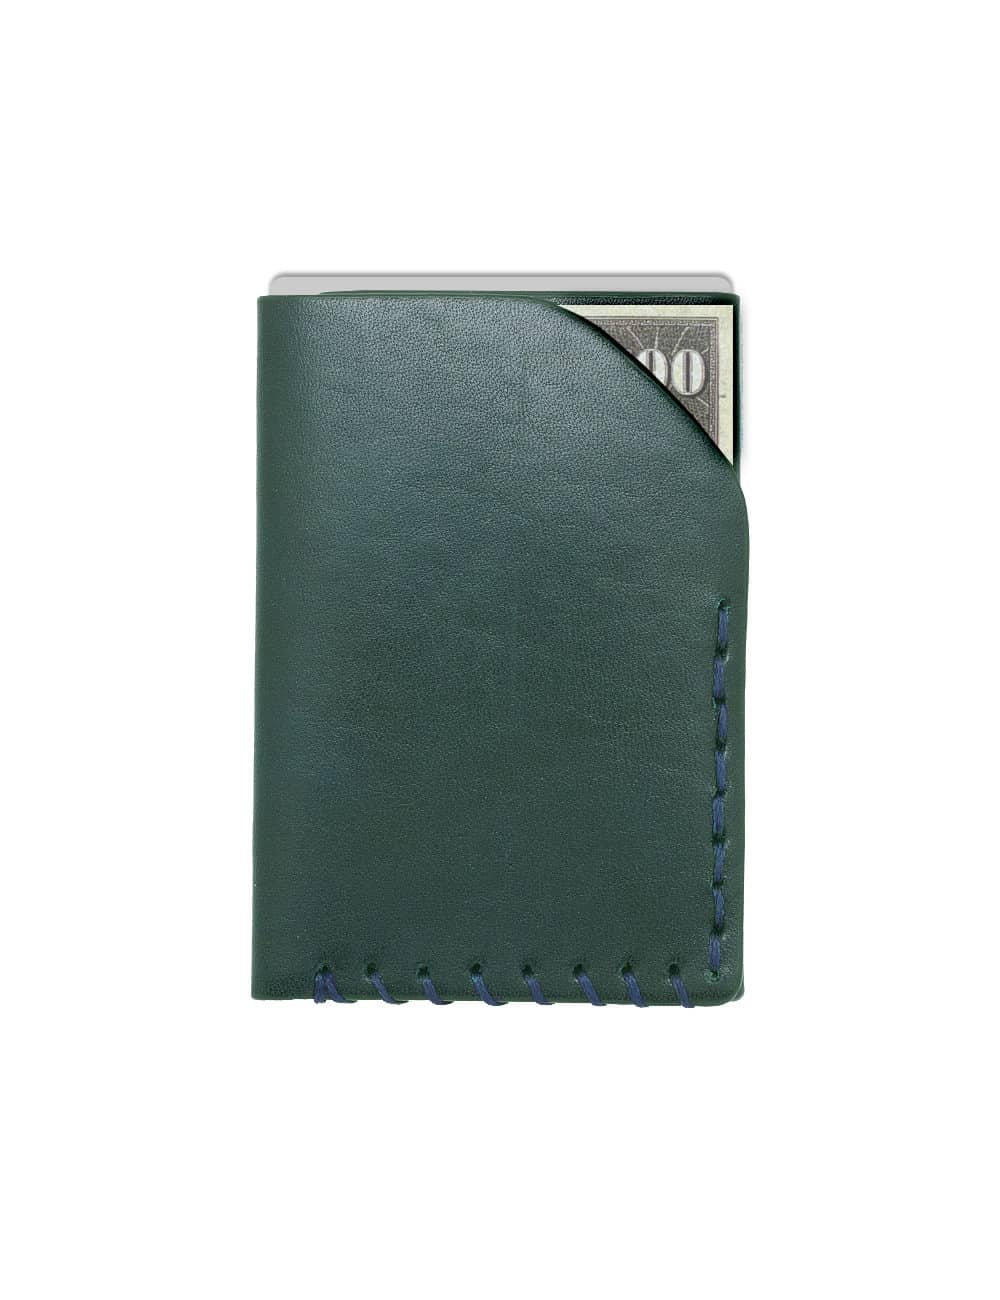 Dark Olive Green 100% Genuine Top Grain Leather Card & Money Holder SLG8.NOB1